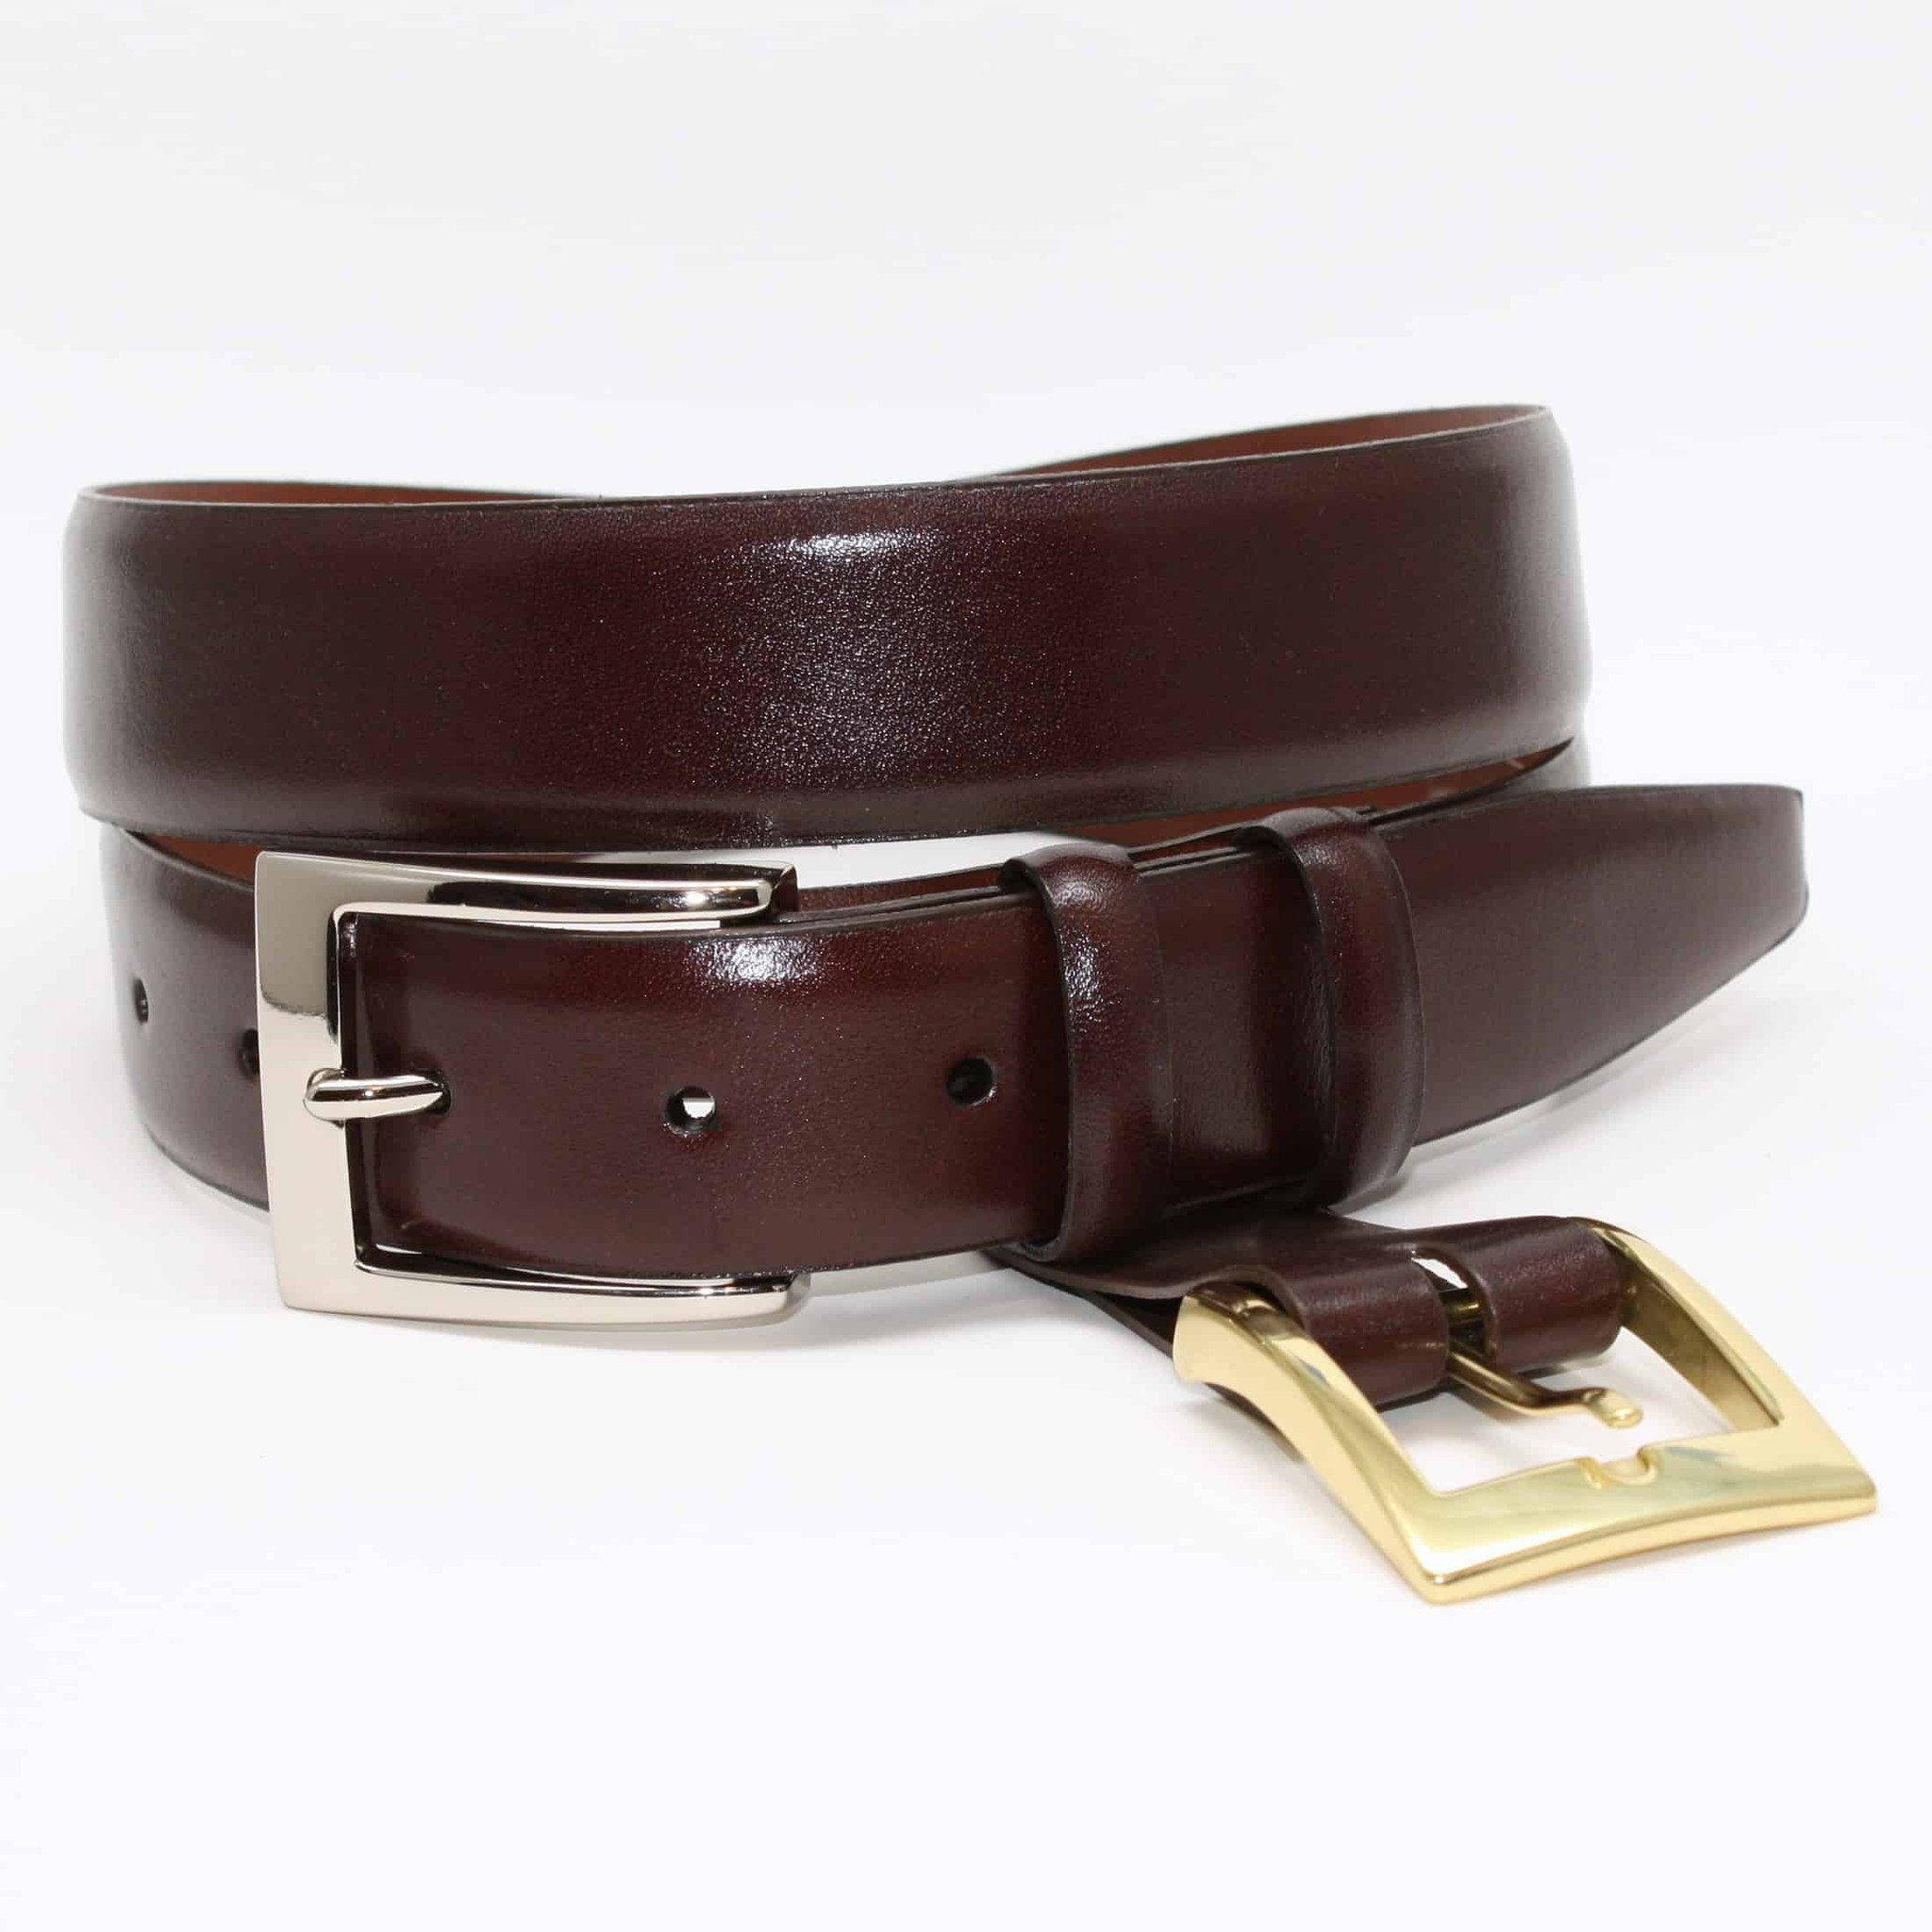 Italian Calfskin Double Buckle Option Belt - Brown,BELT,GentRow.com, | GentRow.com